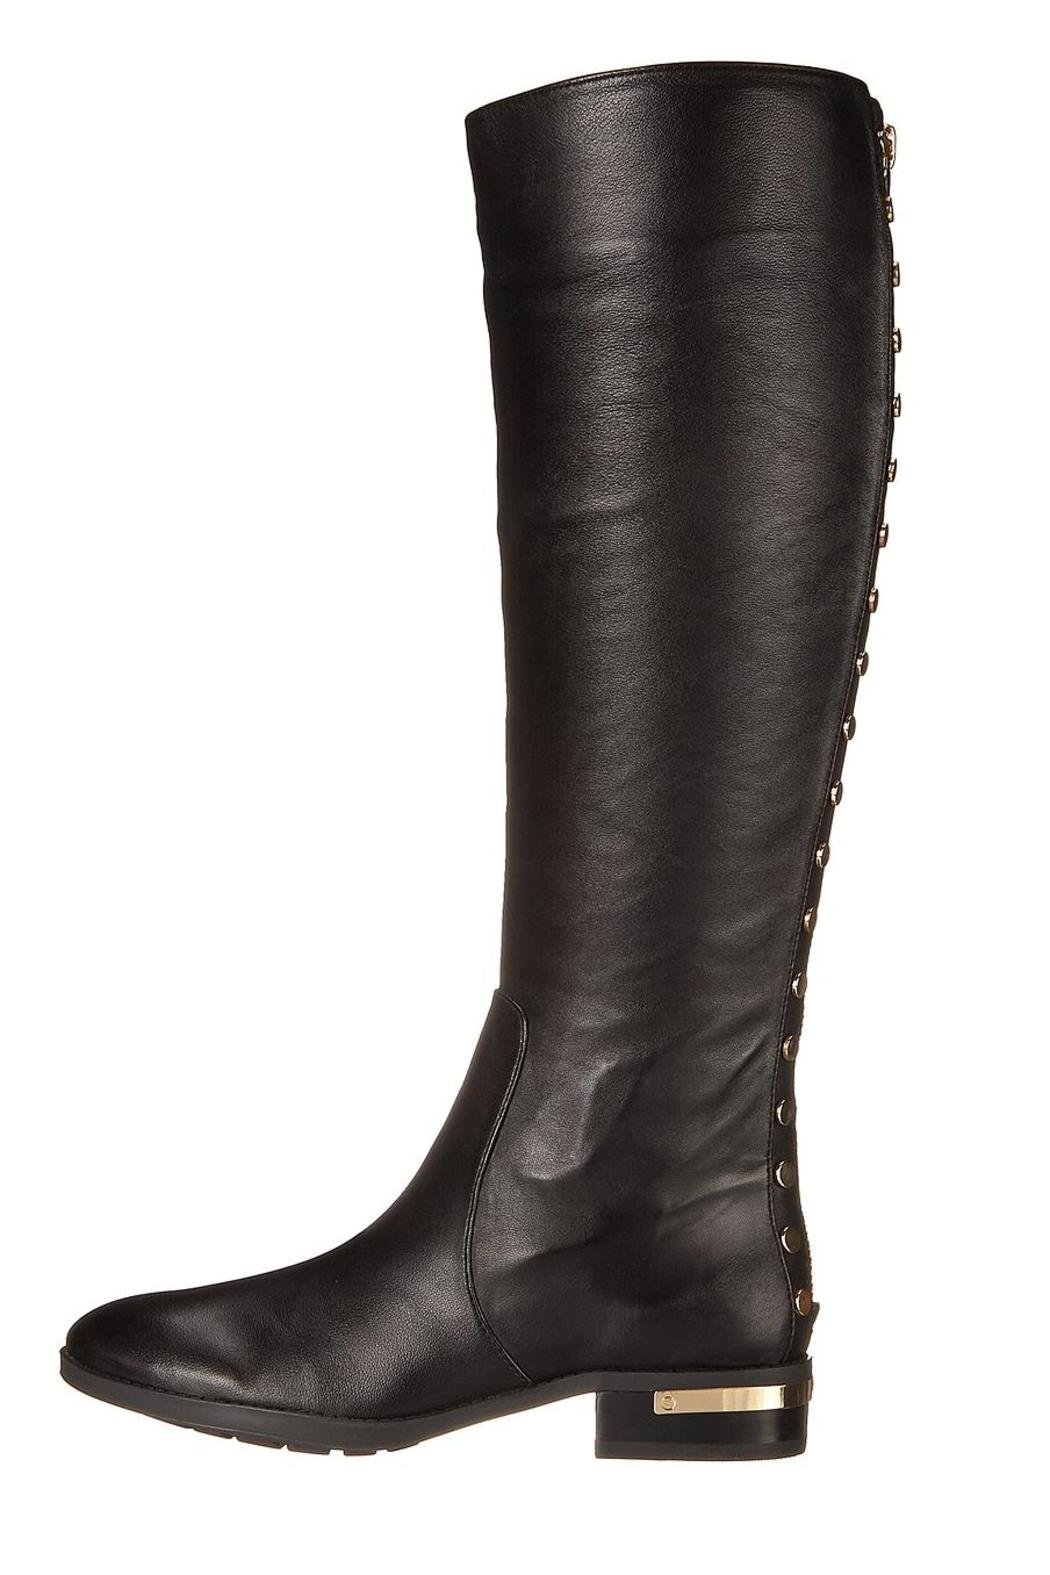 9b3266be0e8 Vince Camuto Parshell Tall Boot from Canada by Jules & Lace — Shoptiques